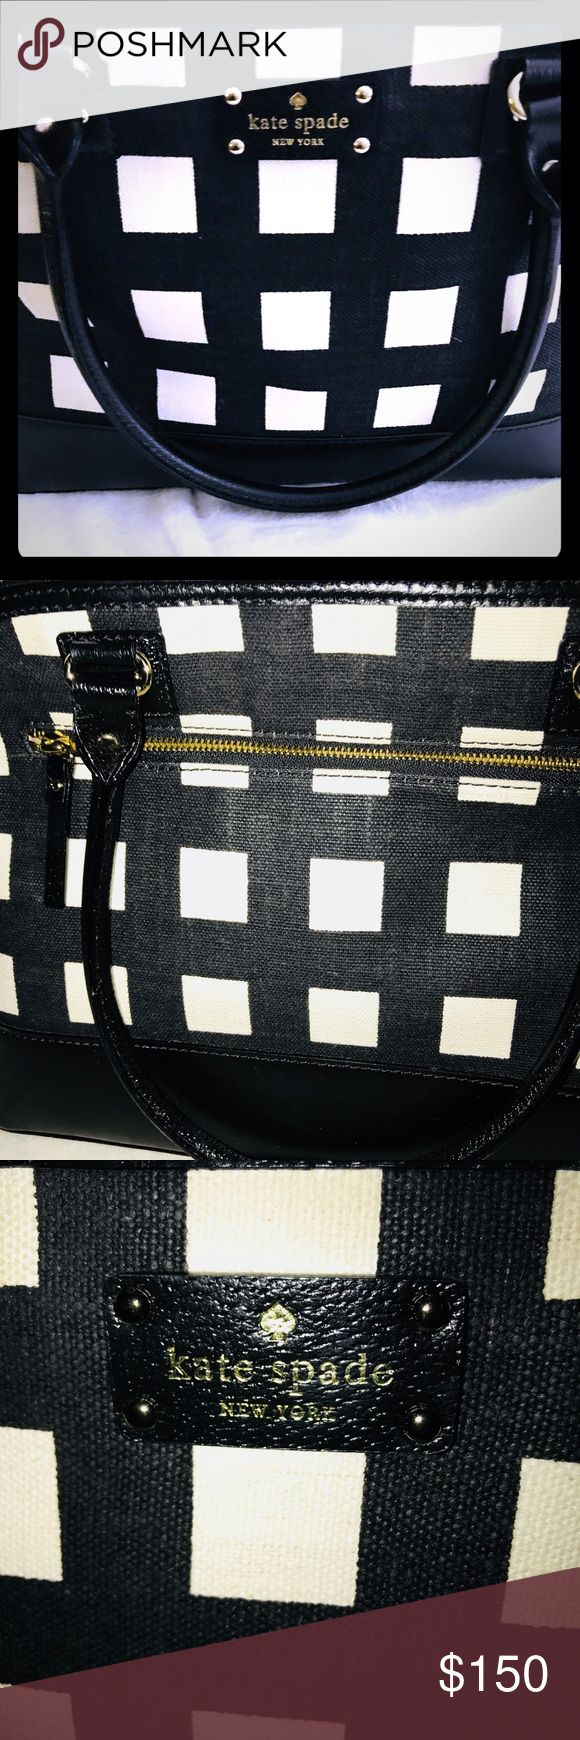 Kate Spade Satchel(large) NWOT Used once only for 10 minuets to wave hello to my friend who loves Kate Spade;  yes, I'm a dork sometimes, lol!!!  I have many bags and am now a single mom.  Must sell as much as I can!!!  In brand new condition.  I'll put the stuffing back in it.  Price reduction is a huge steel and firm.  With 3 times as much. Kate Spade Bags Satchels